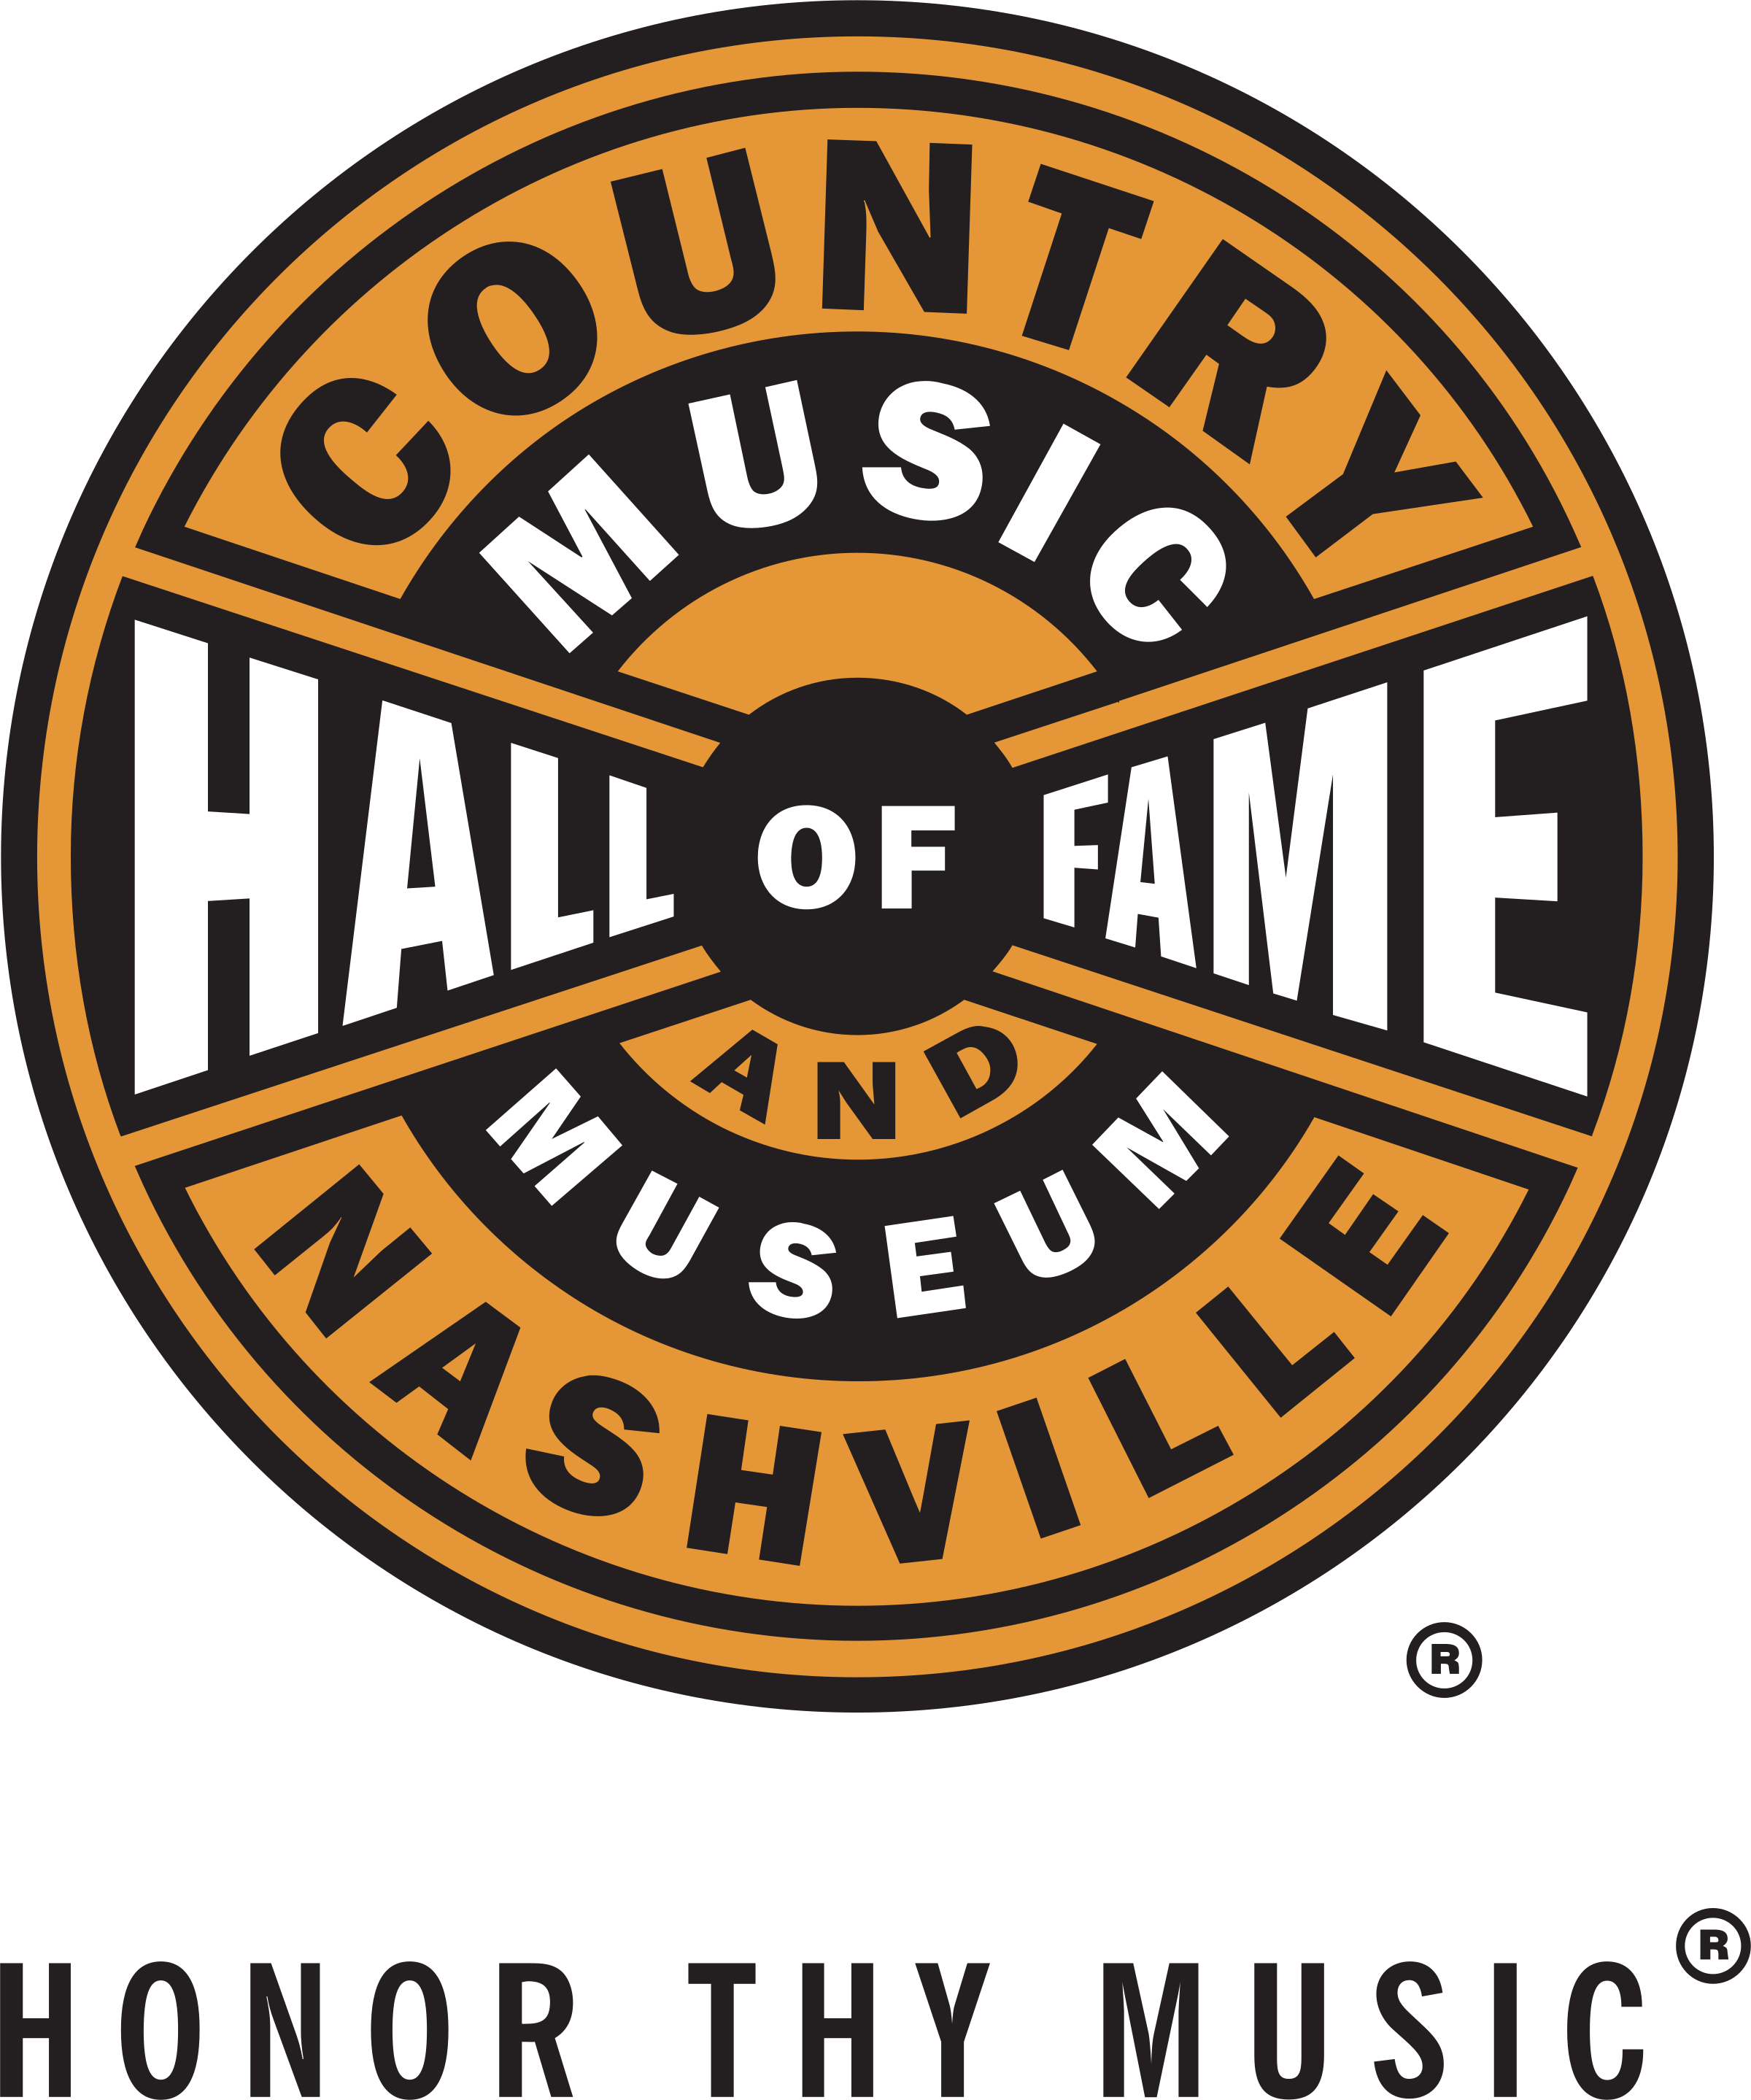 Country music png. Hall of fame and